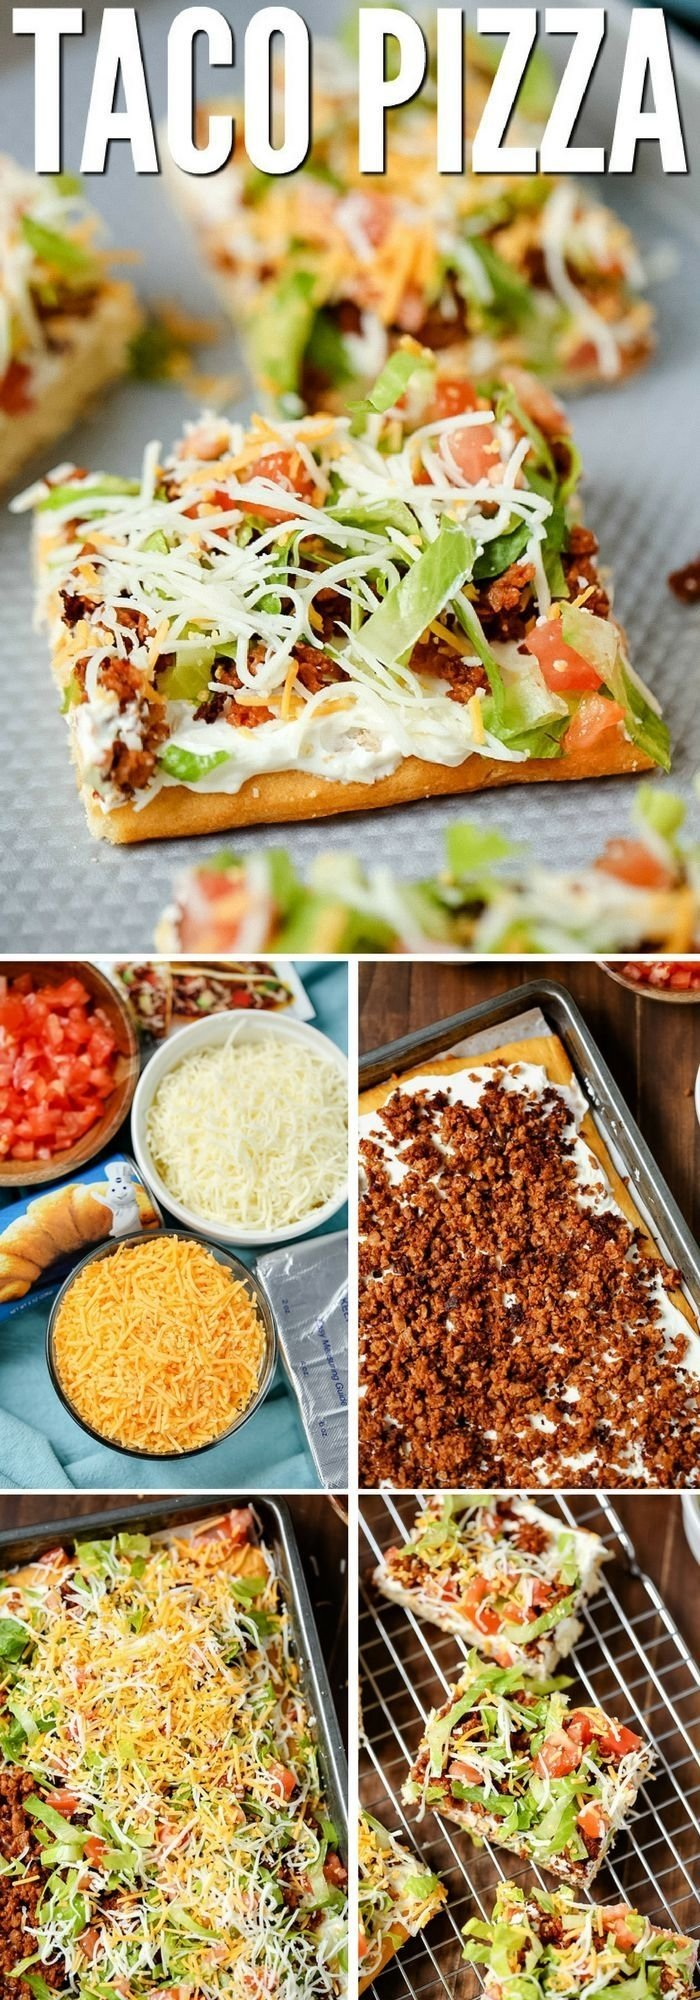 10 Most Recommended Easy Supper Ideas For Families 1906 best main dish recipes images on pinterest drink cooker 2021